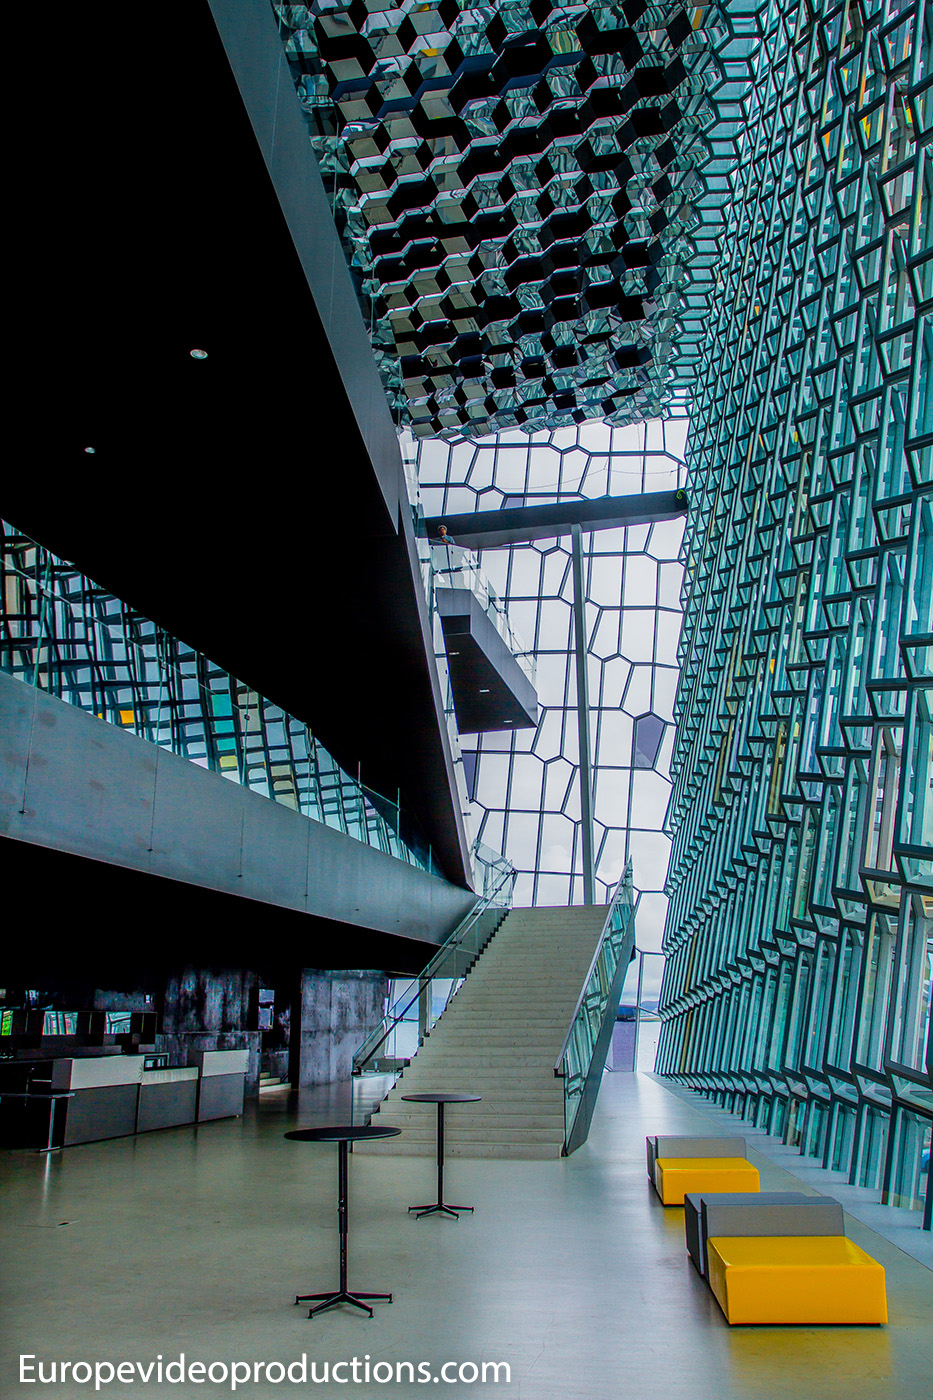 Harpa Concert Hall in Reykjavik, capital of Iceland